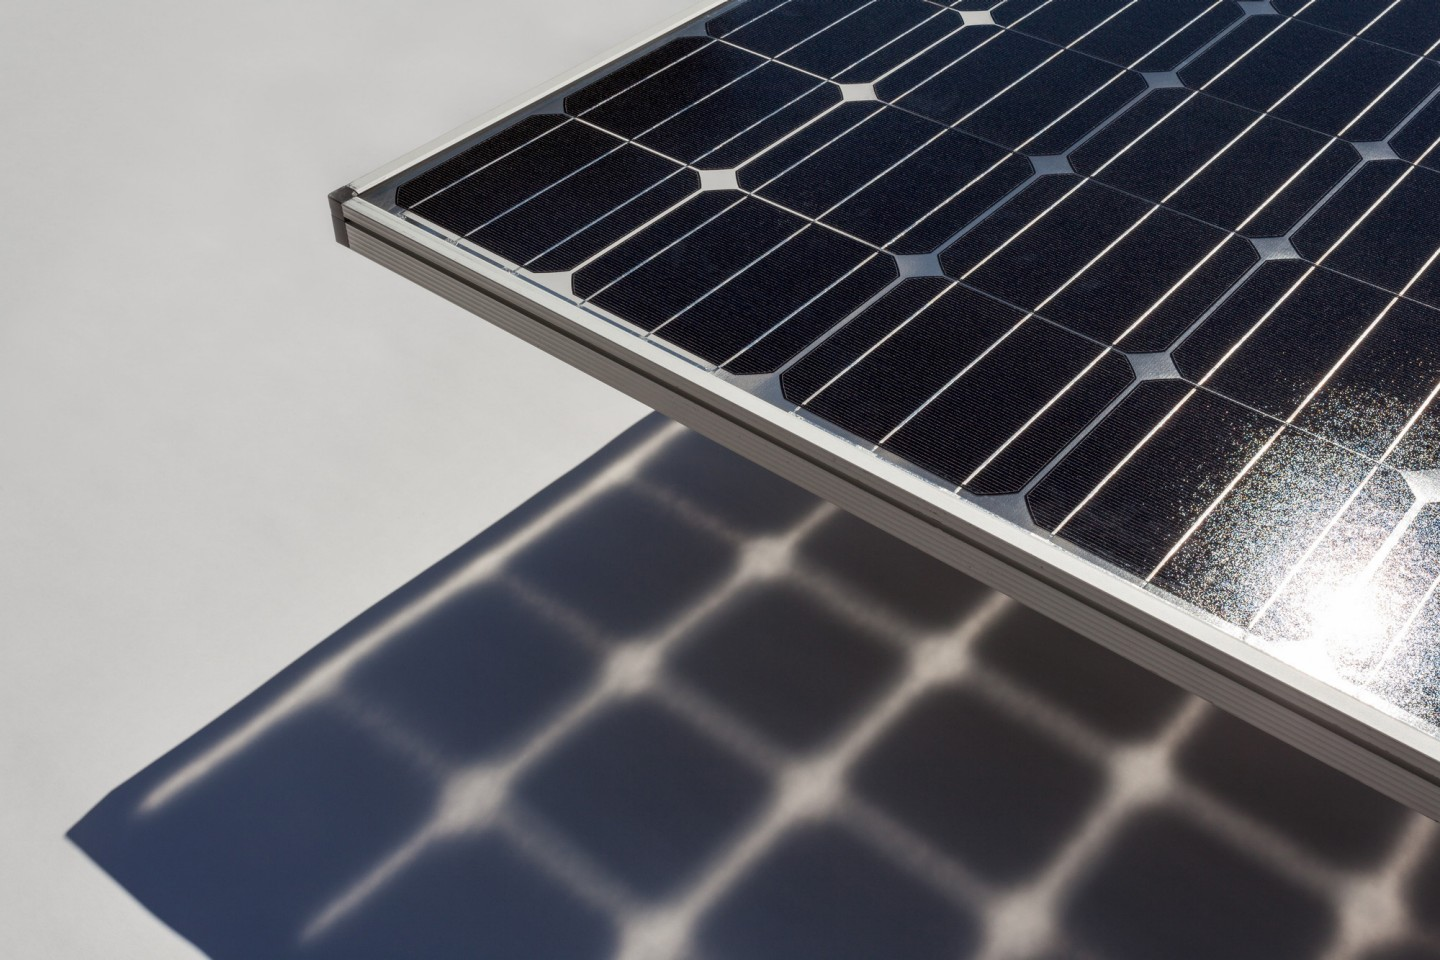 Users can now investigate the effect of a second photoactive side of the solar cell within the module stack. Image: Fraunhofer ISE